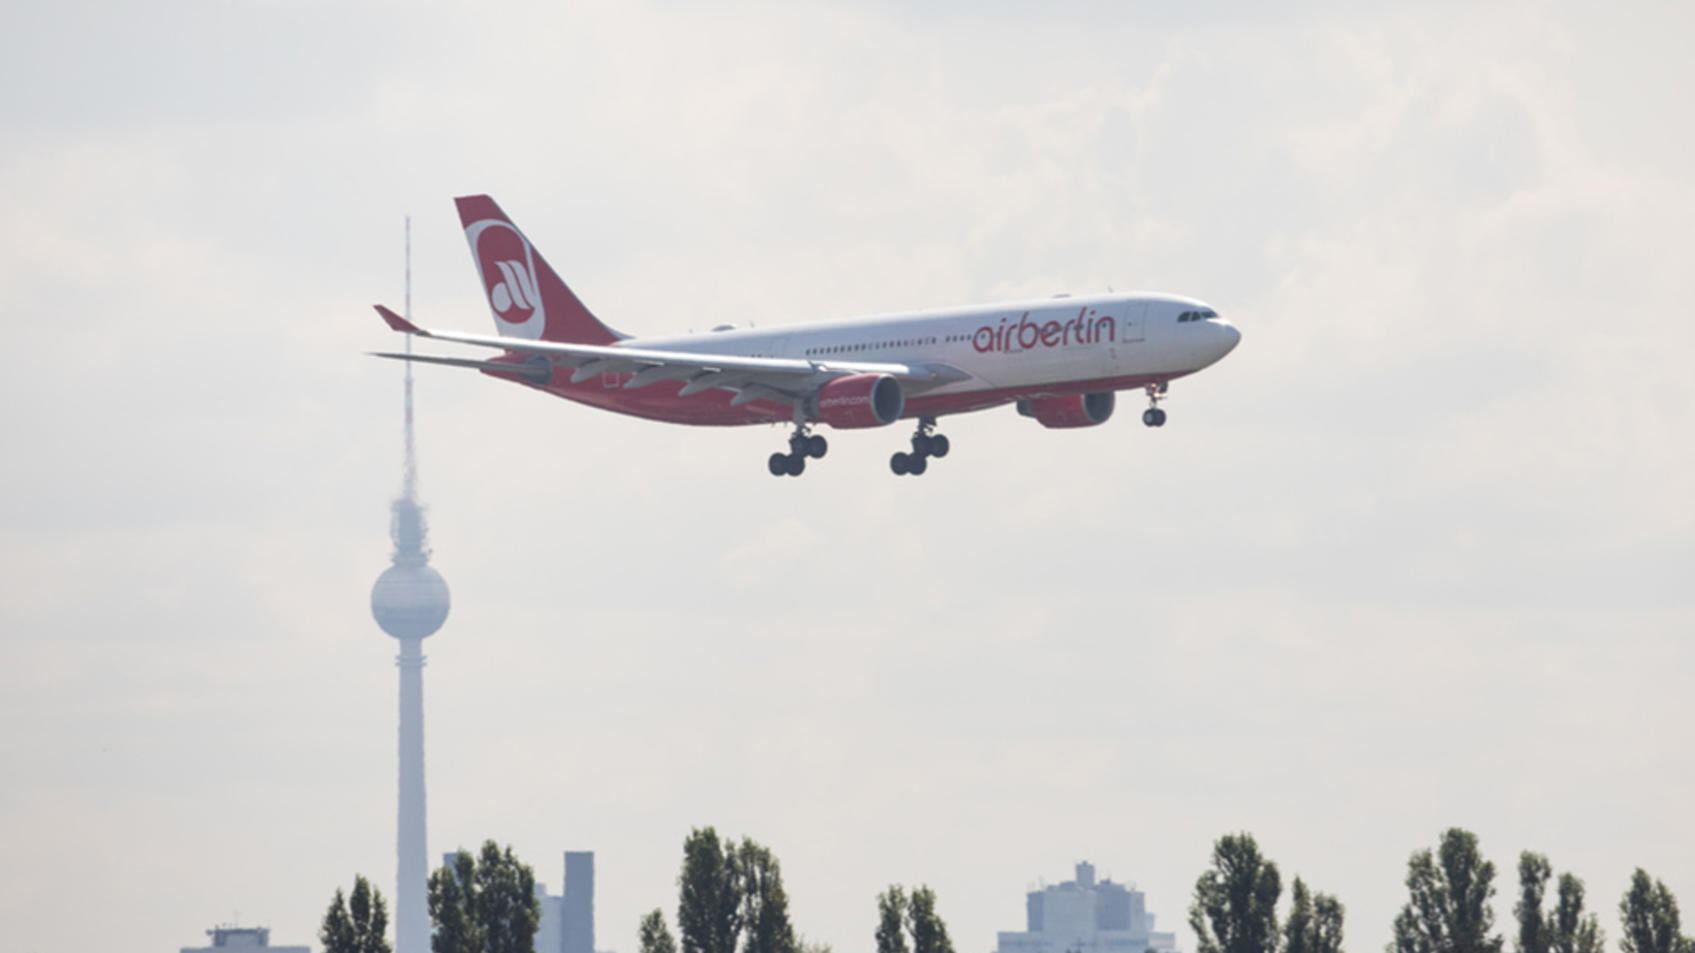 Konkurrent Germania will Staatshilfe für Air Berlin stoppen